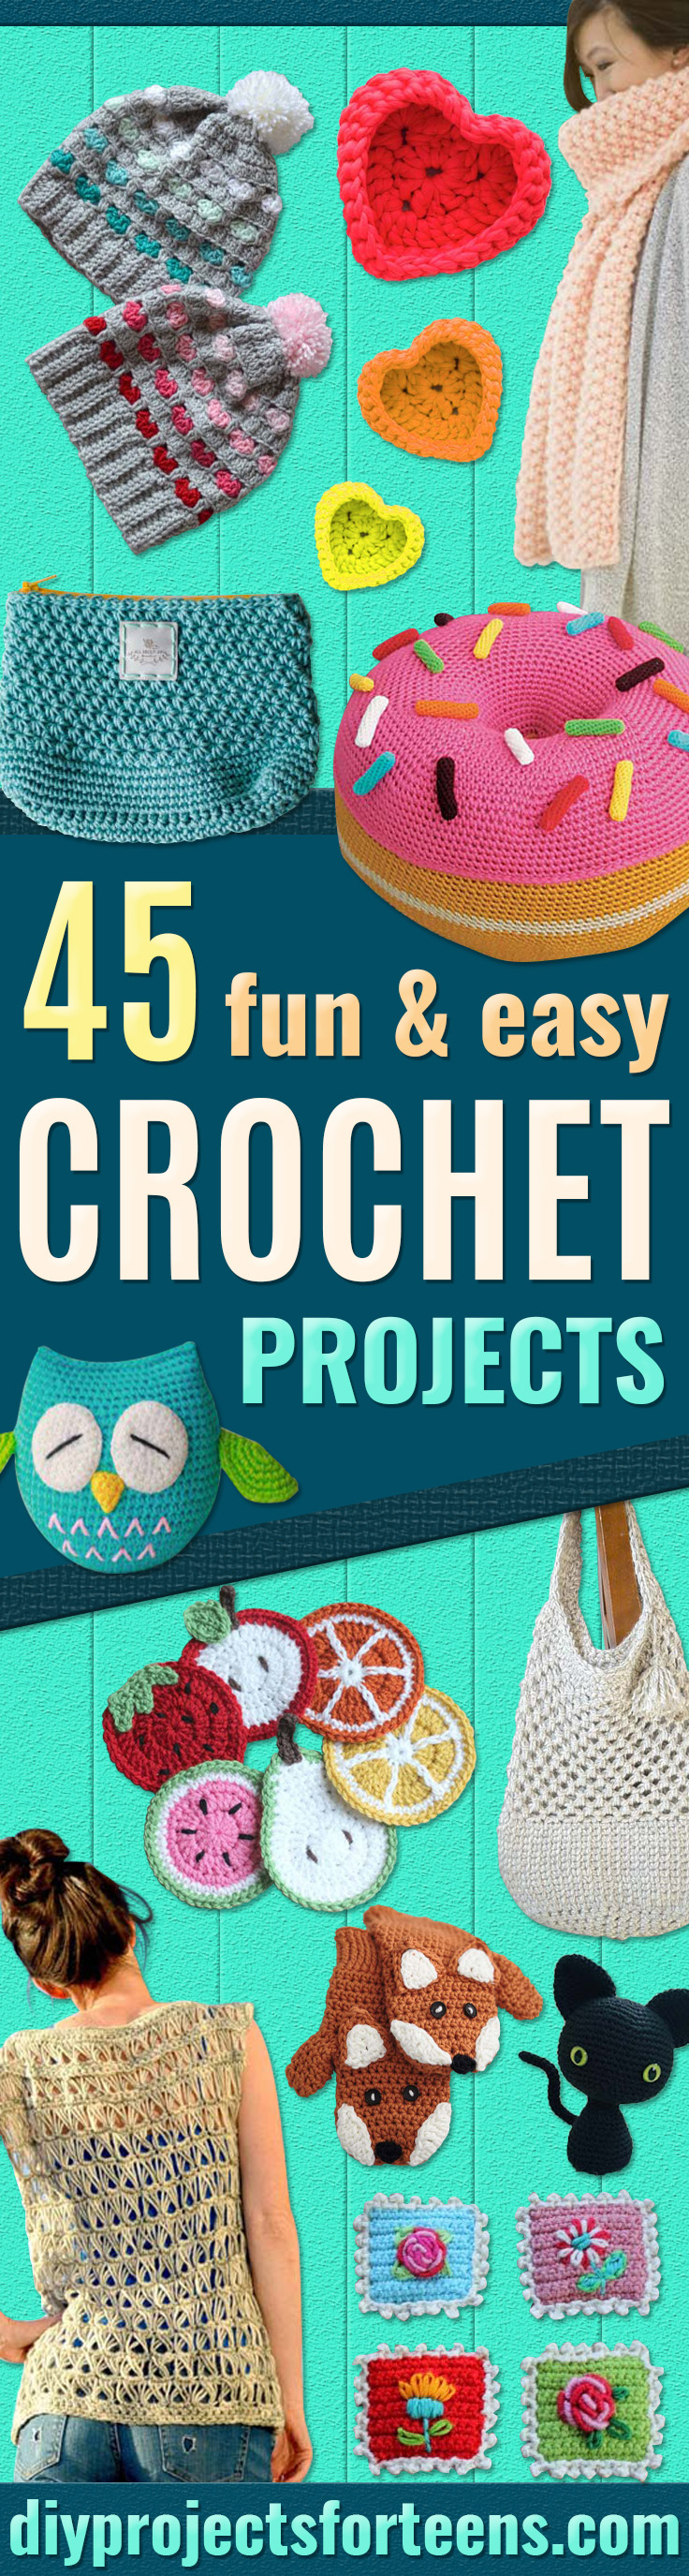 45 Fun and Easy Crochet Projects